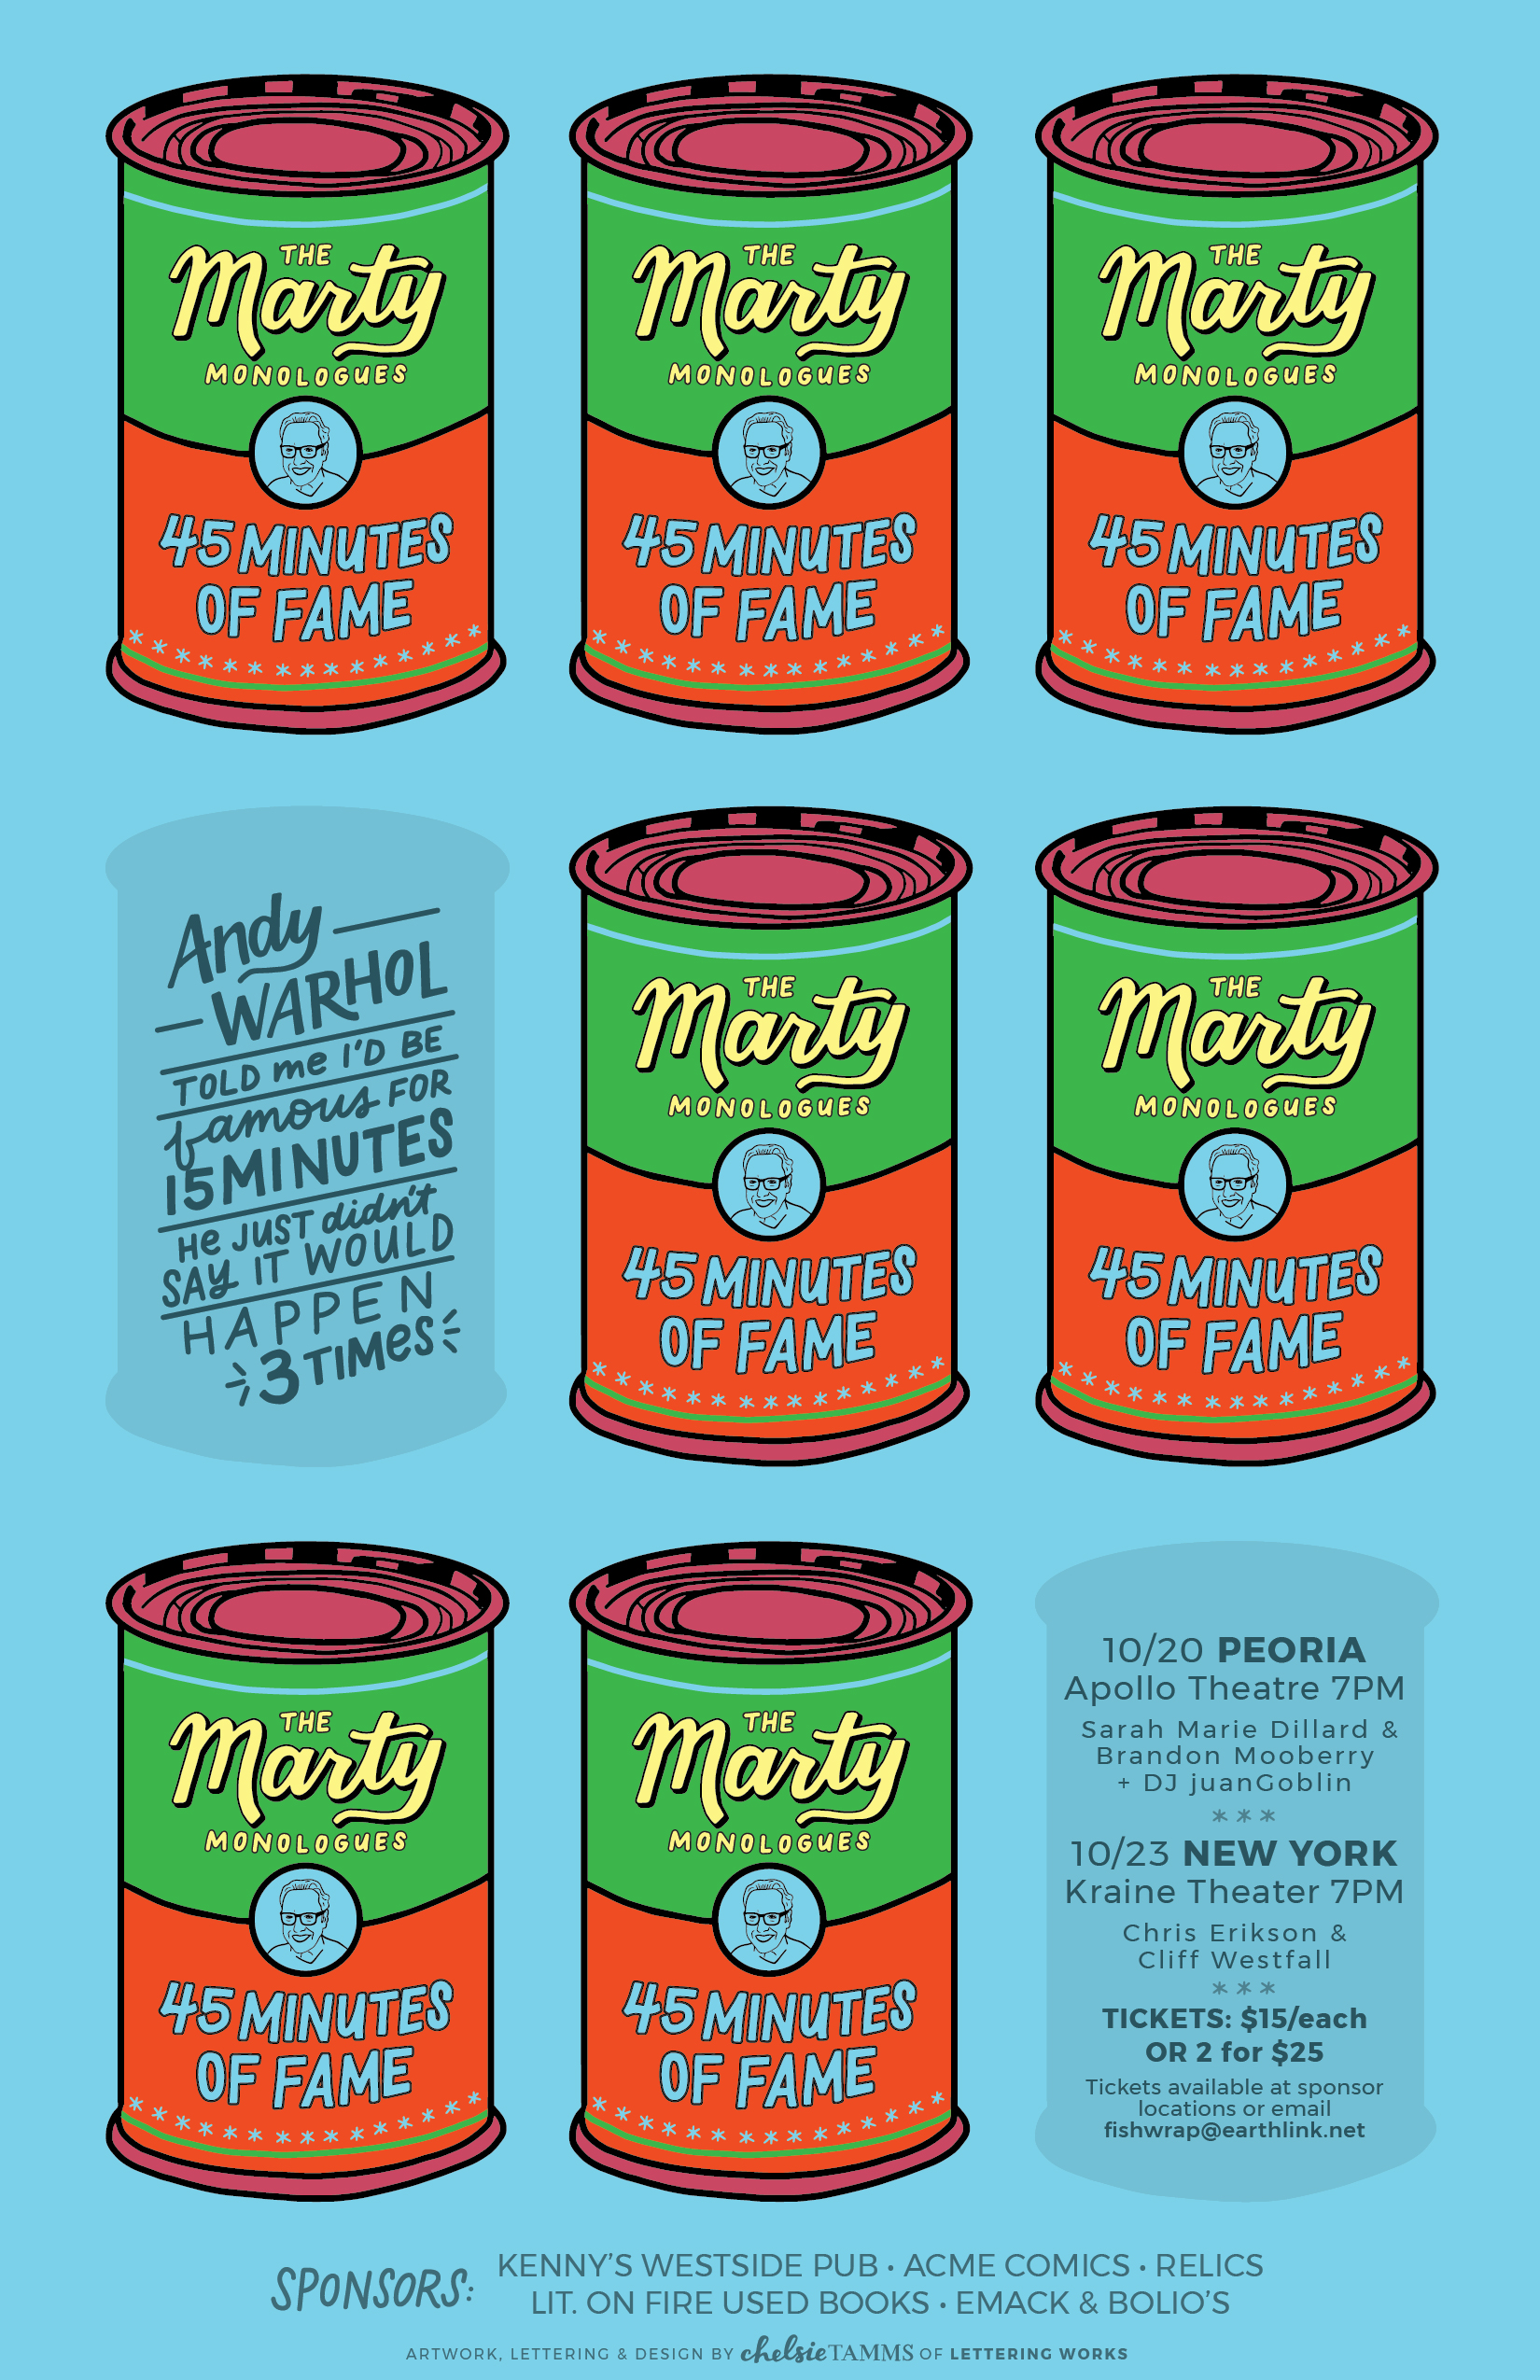 Marty Monologues 3 - 45 Minutes of Fame - Poster by Lettering Works